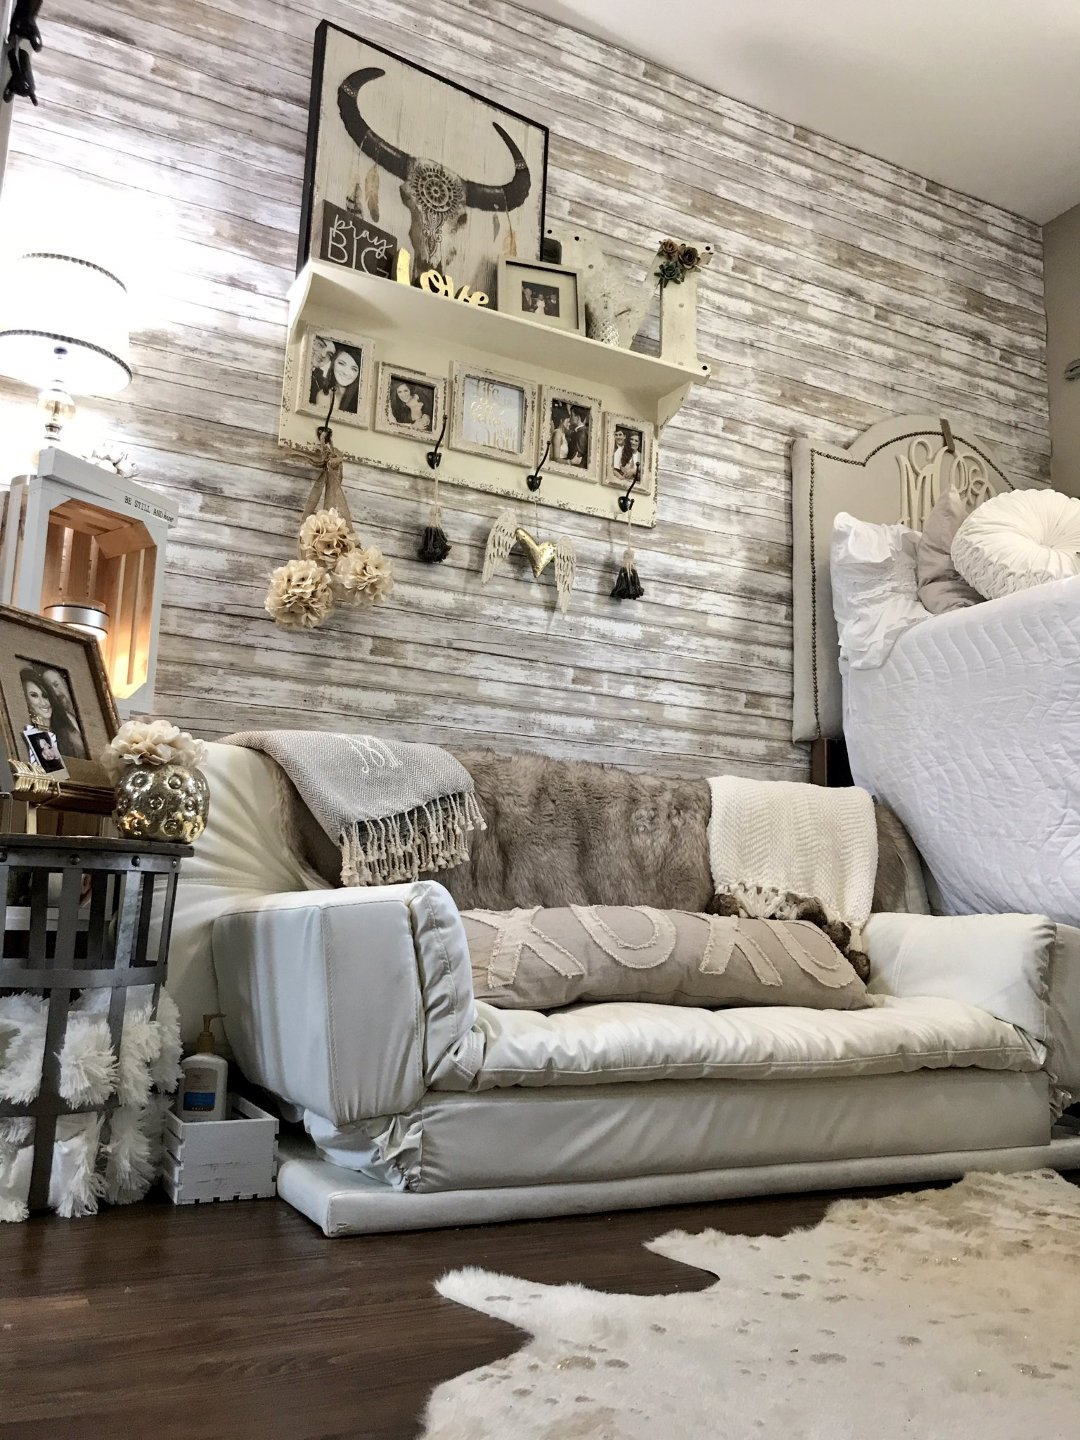 college dorm room decorated with wallpaper, wall decor, and couch in farm style chic